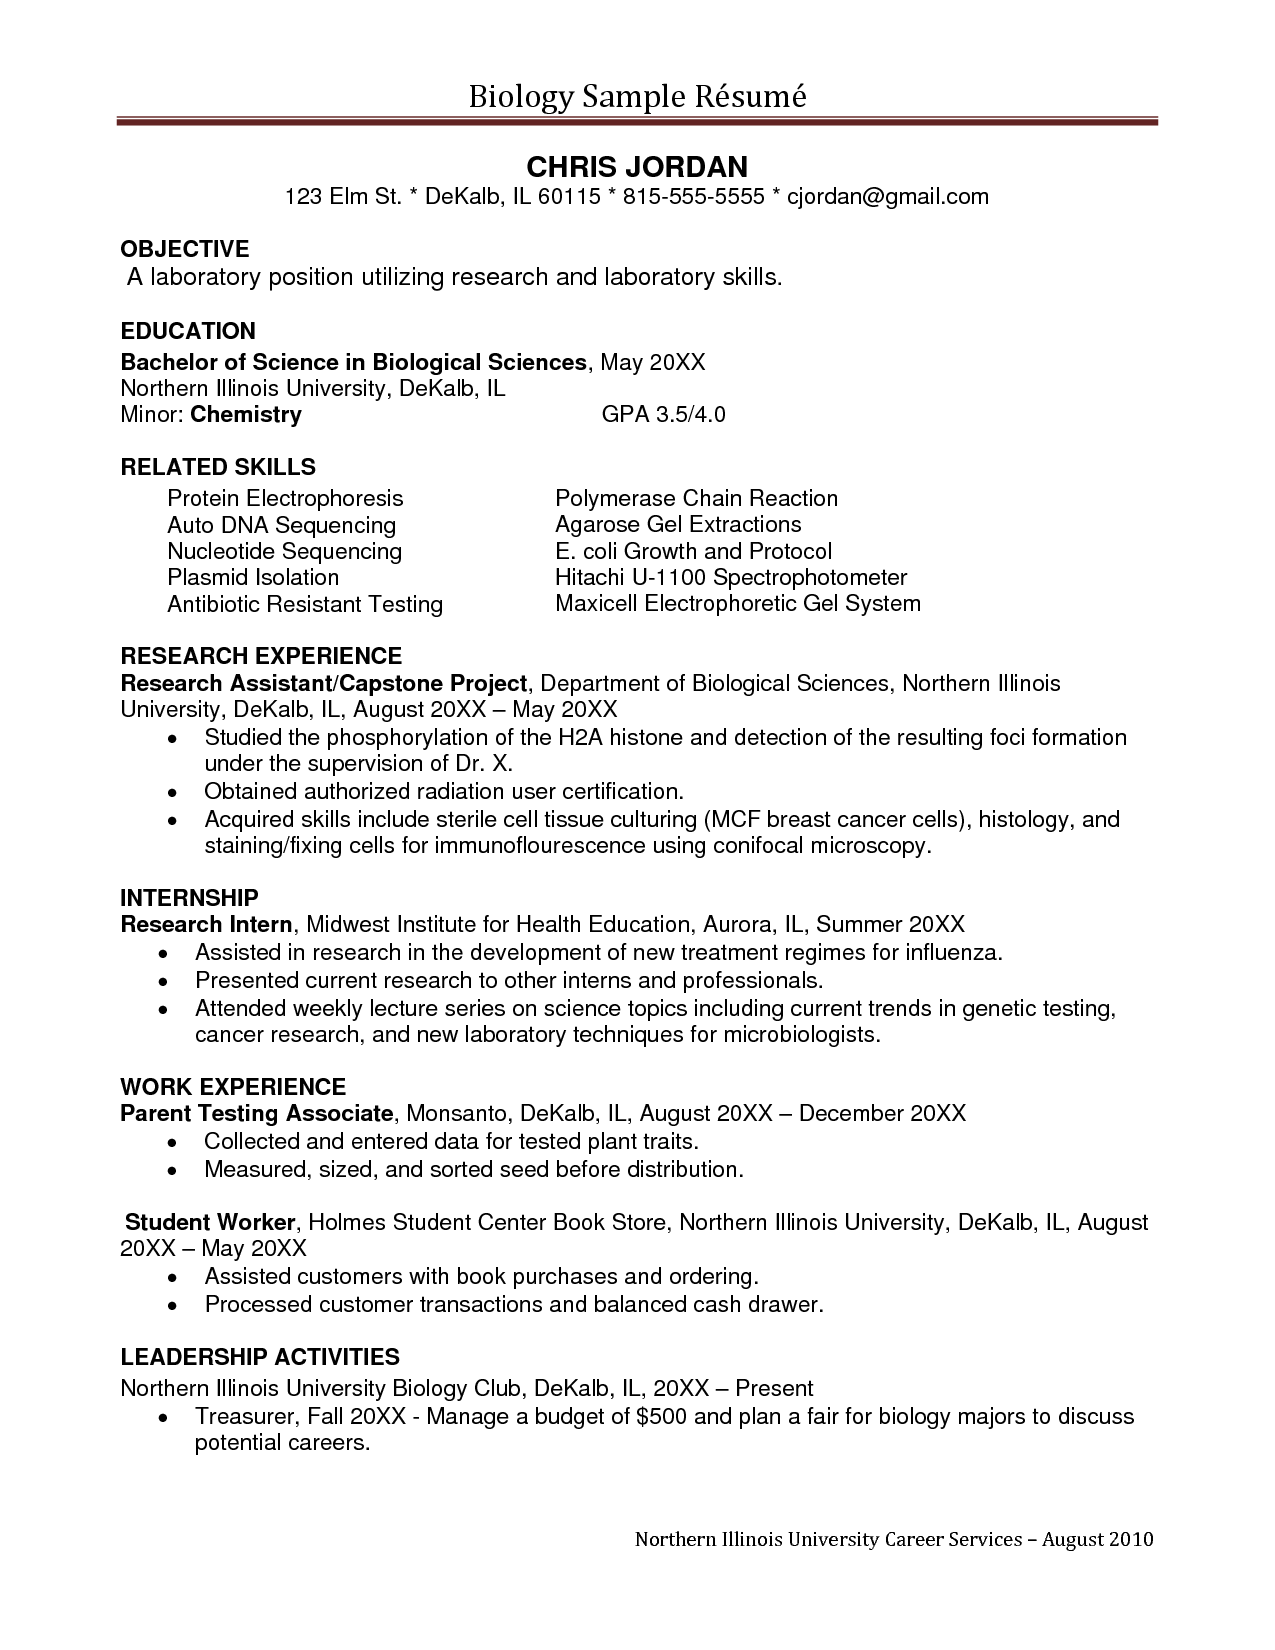 research assistant resume sample objective research assistant resume sample objective admin assistant objective resume sample. Resume Example. Resume CV Cover Letter